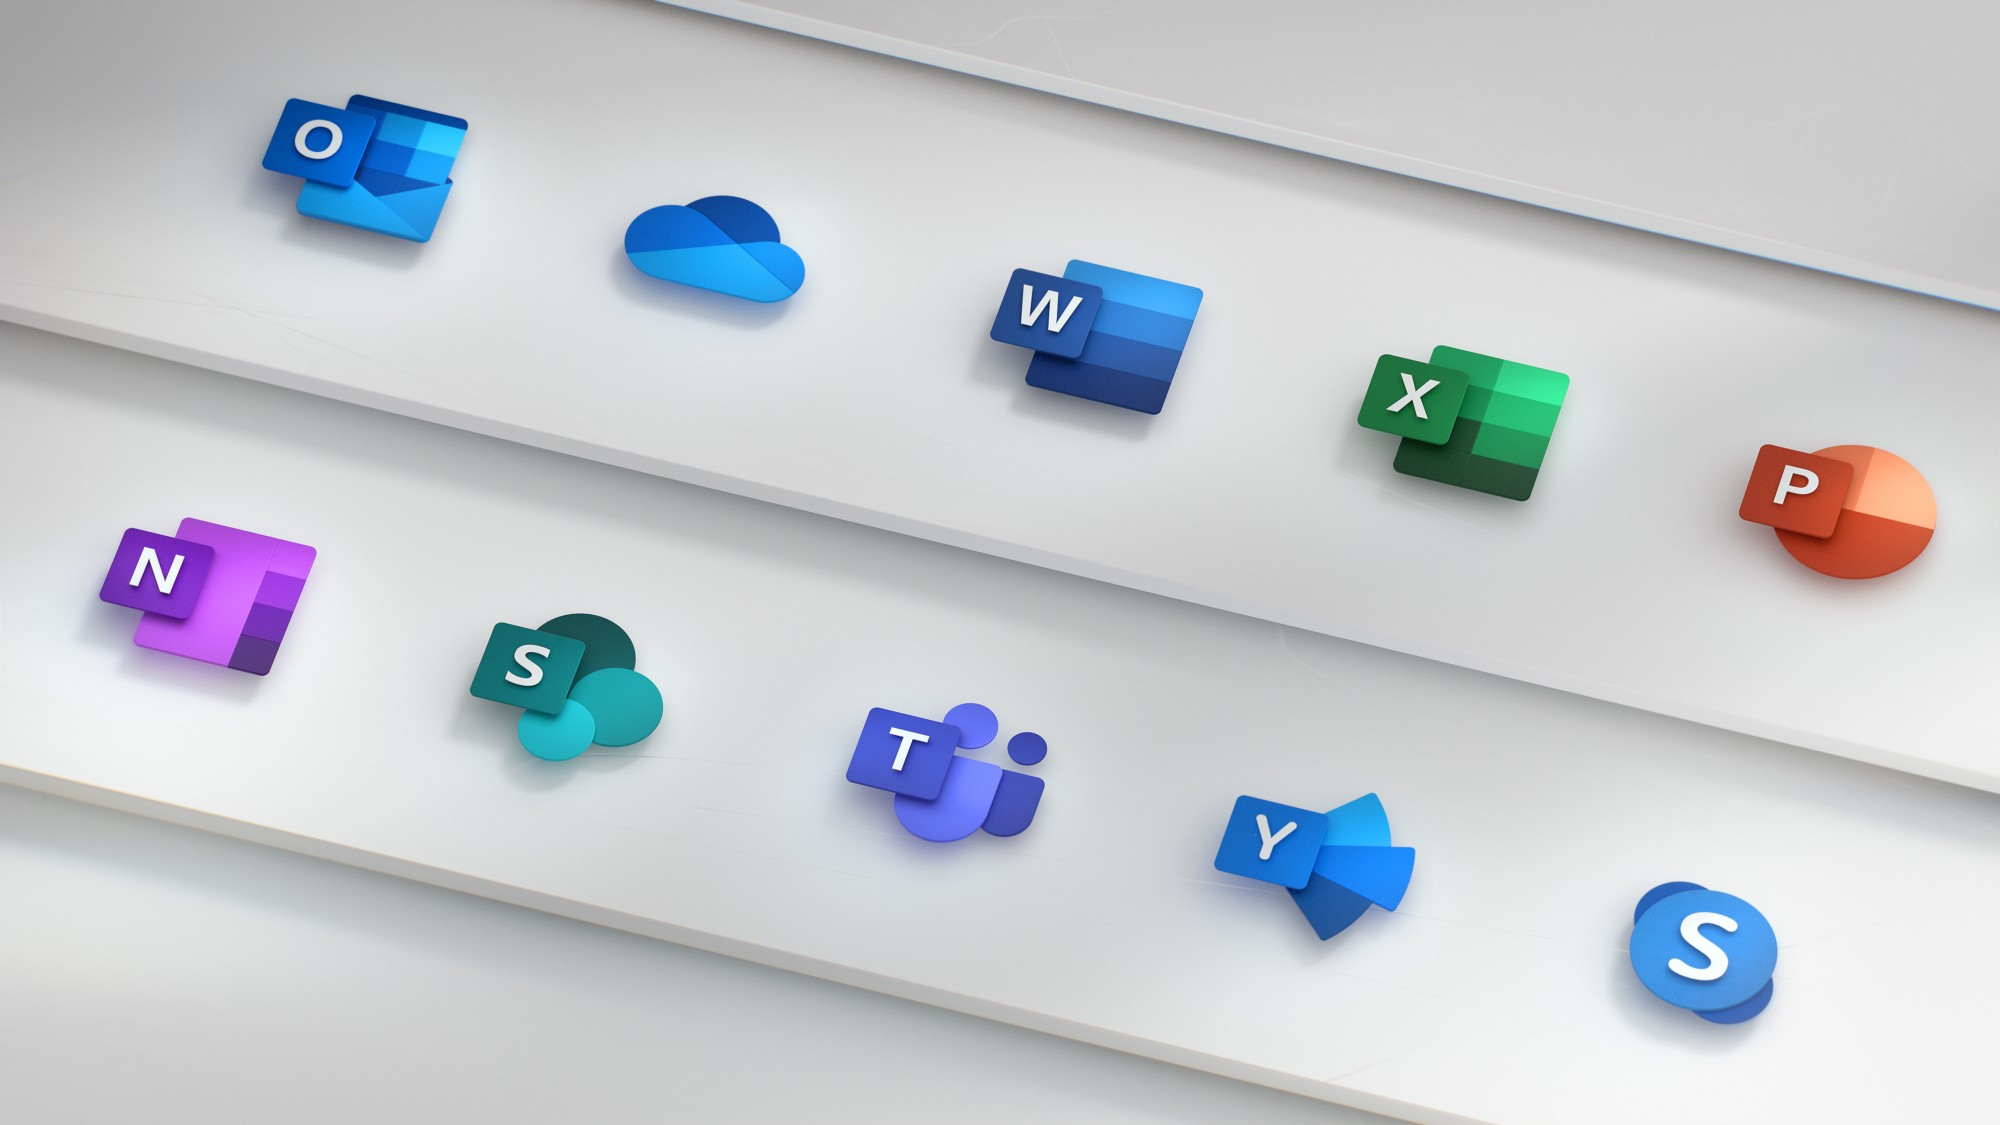 Meet the new icons for Office 365